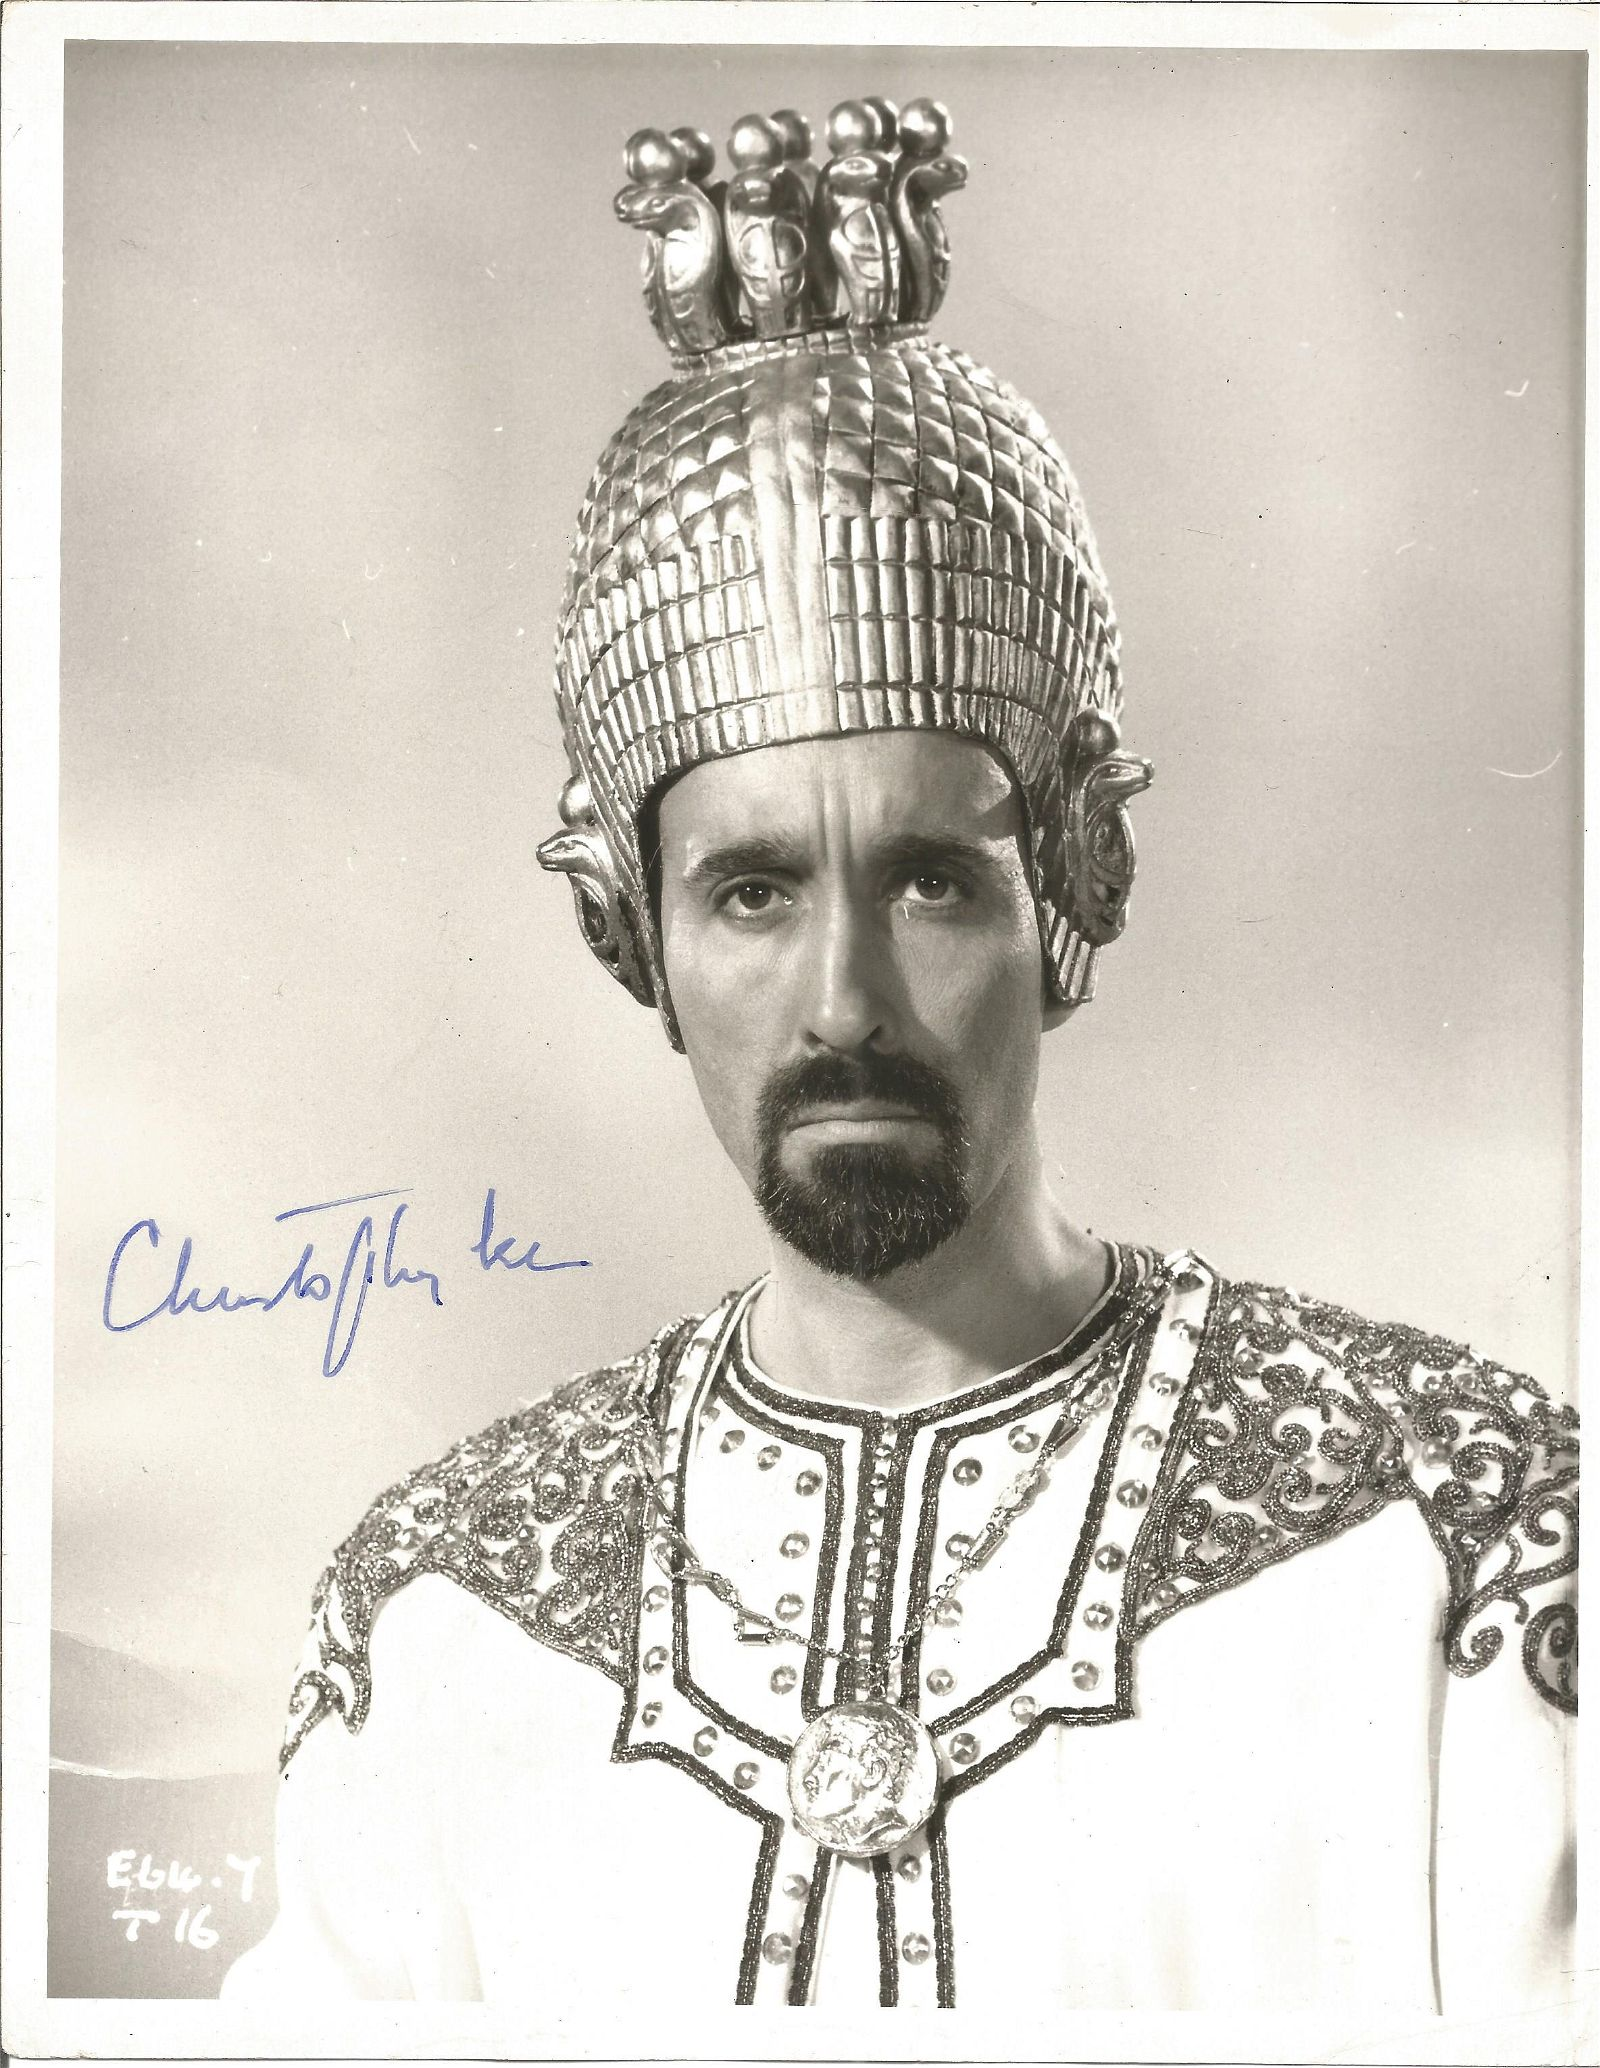 Christopher Lee signed 10 x 8 inch b/w photo. Condition